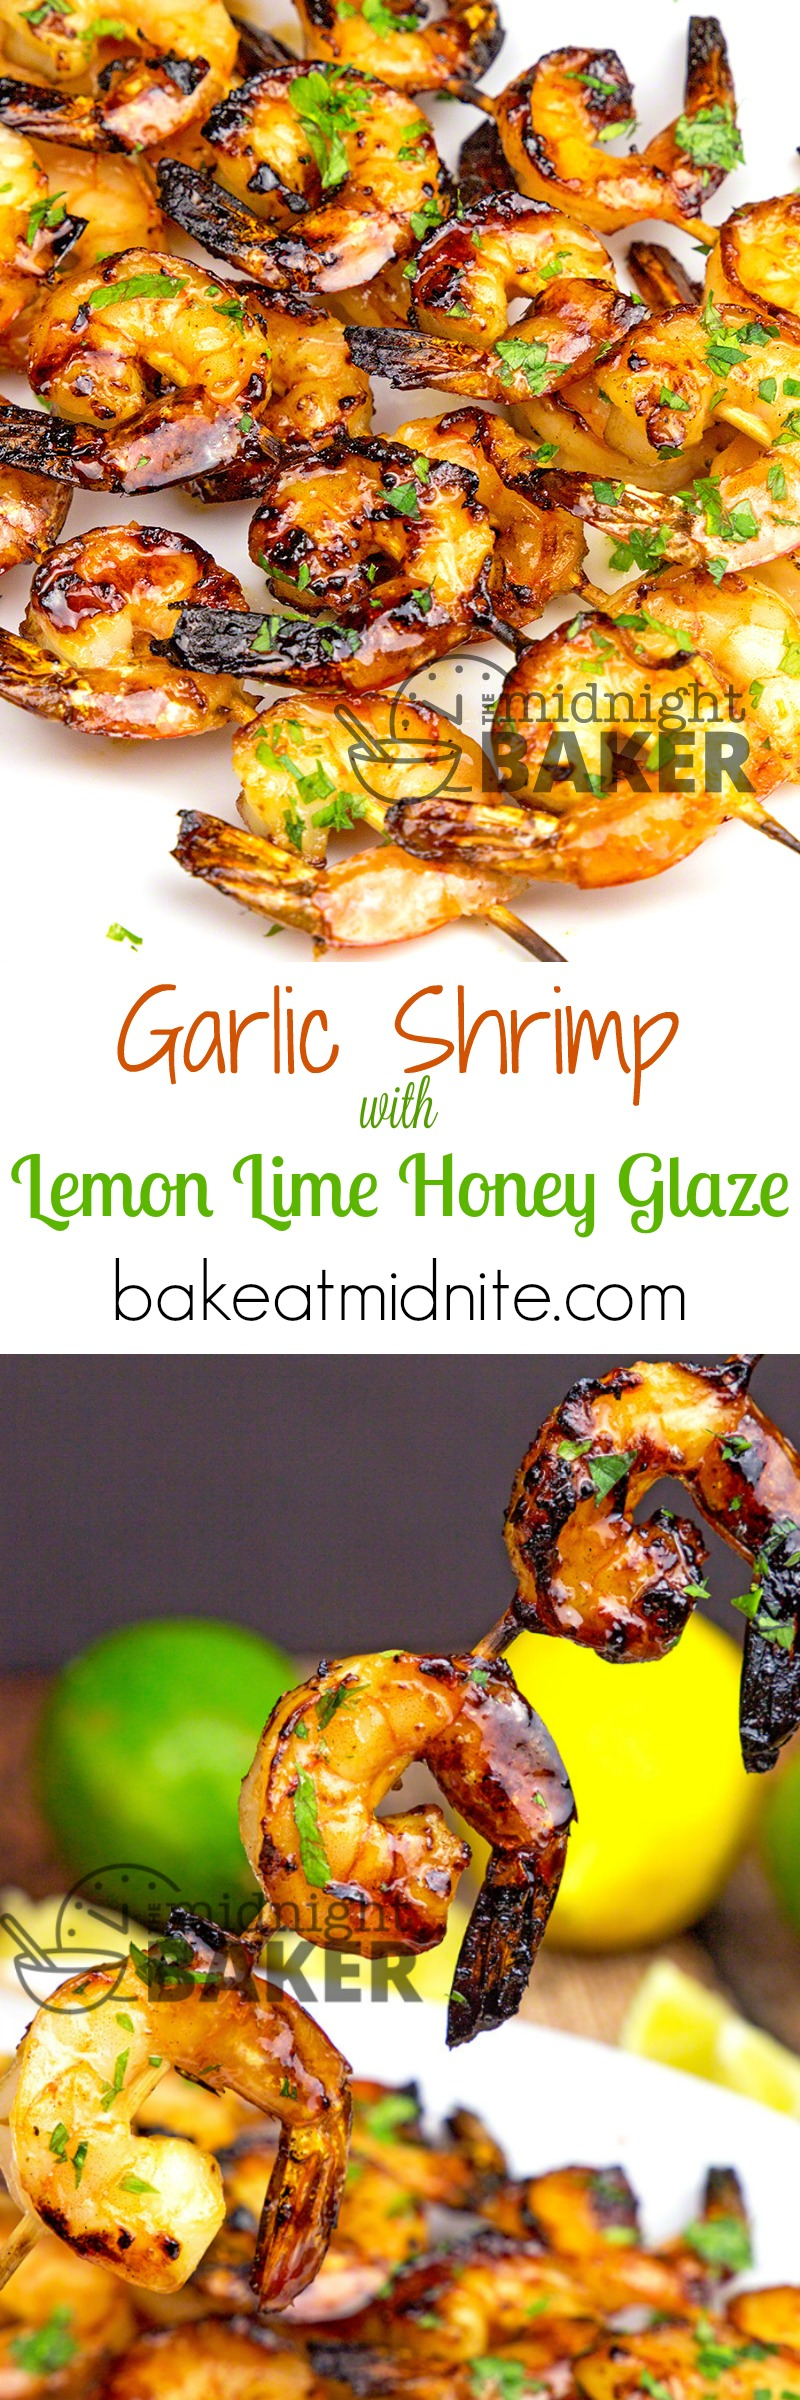 Shrimp with a wonderful garlic flavor glazed with a sweet but tangy lemon lime glaze.